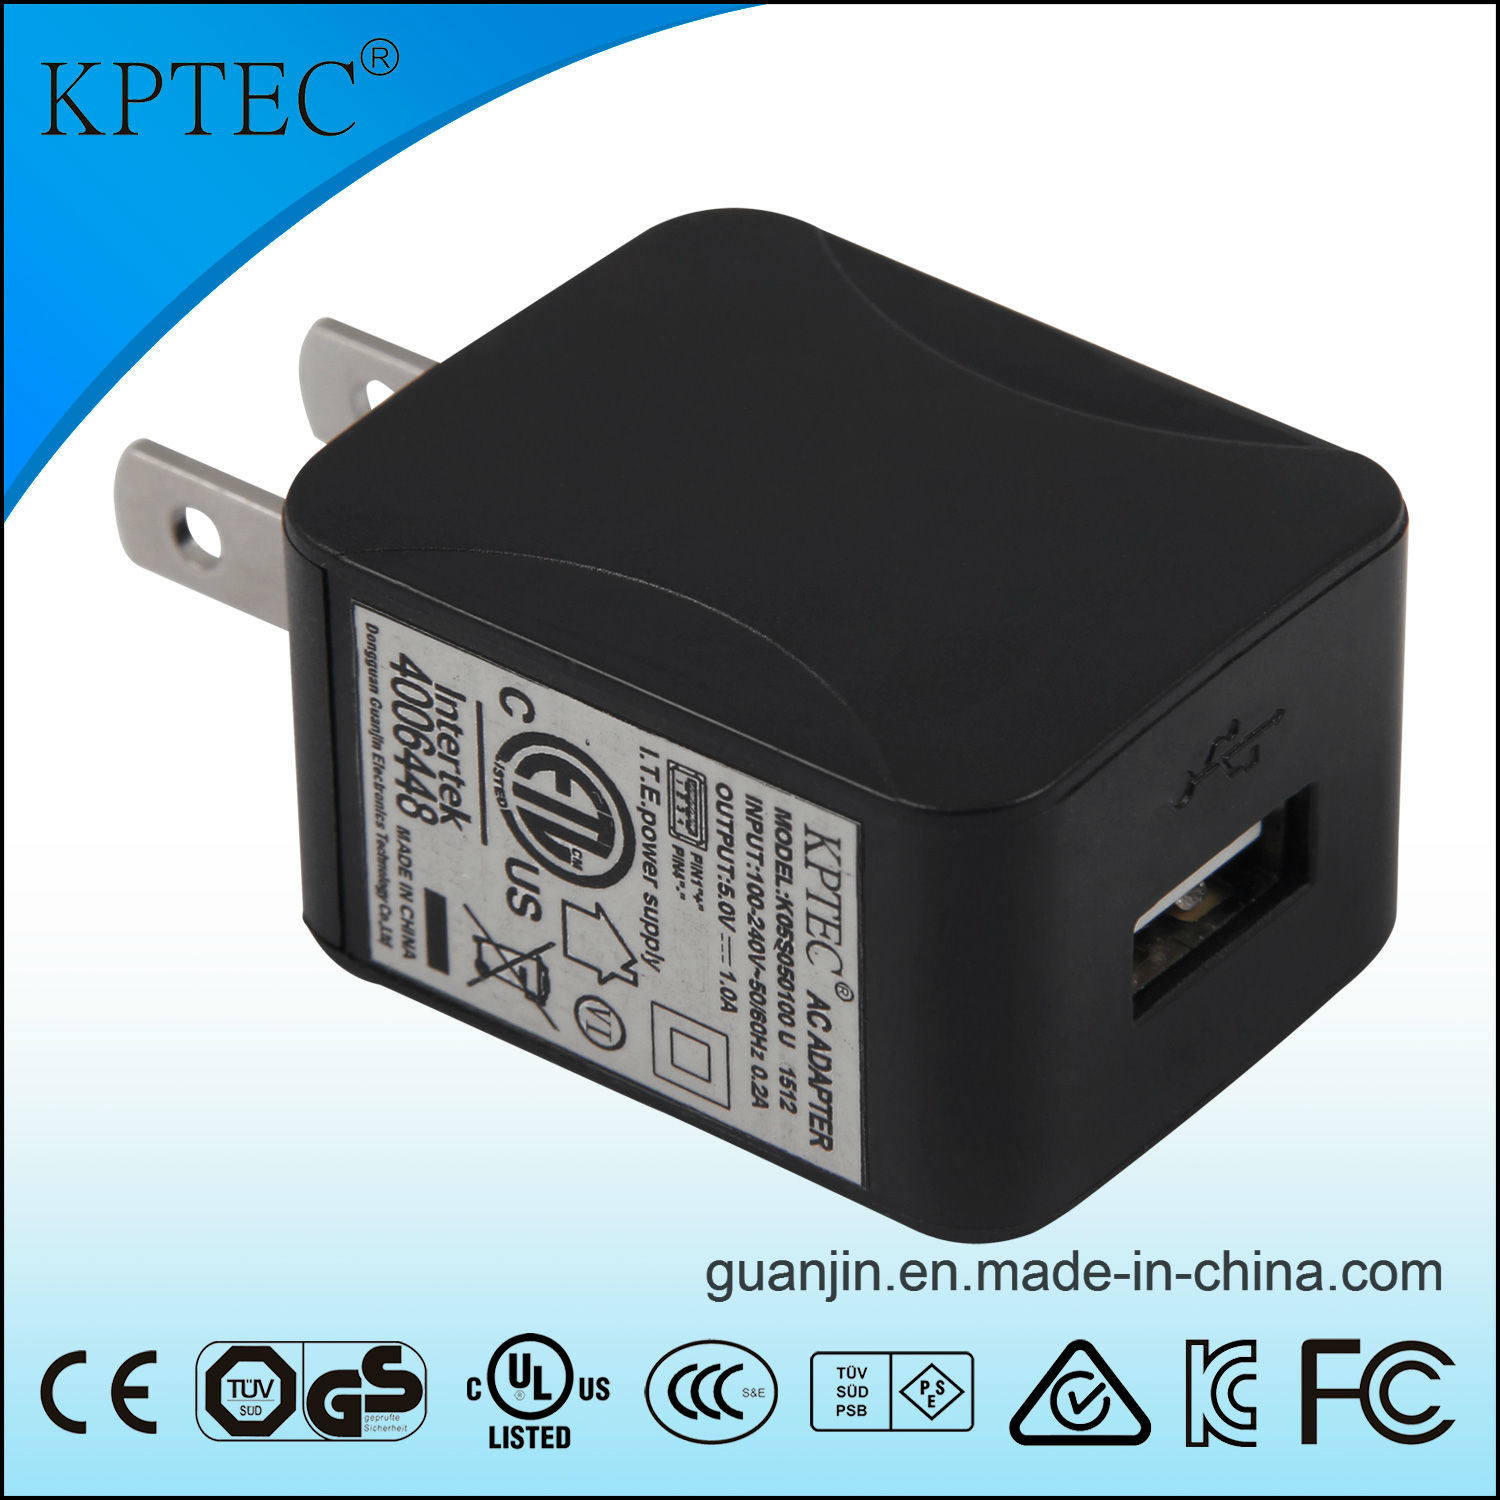 Kpetc 6V 1A USB Charger for Small Home Appliance Product USB